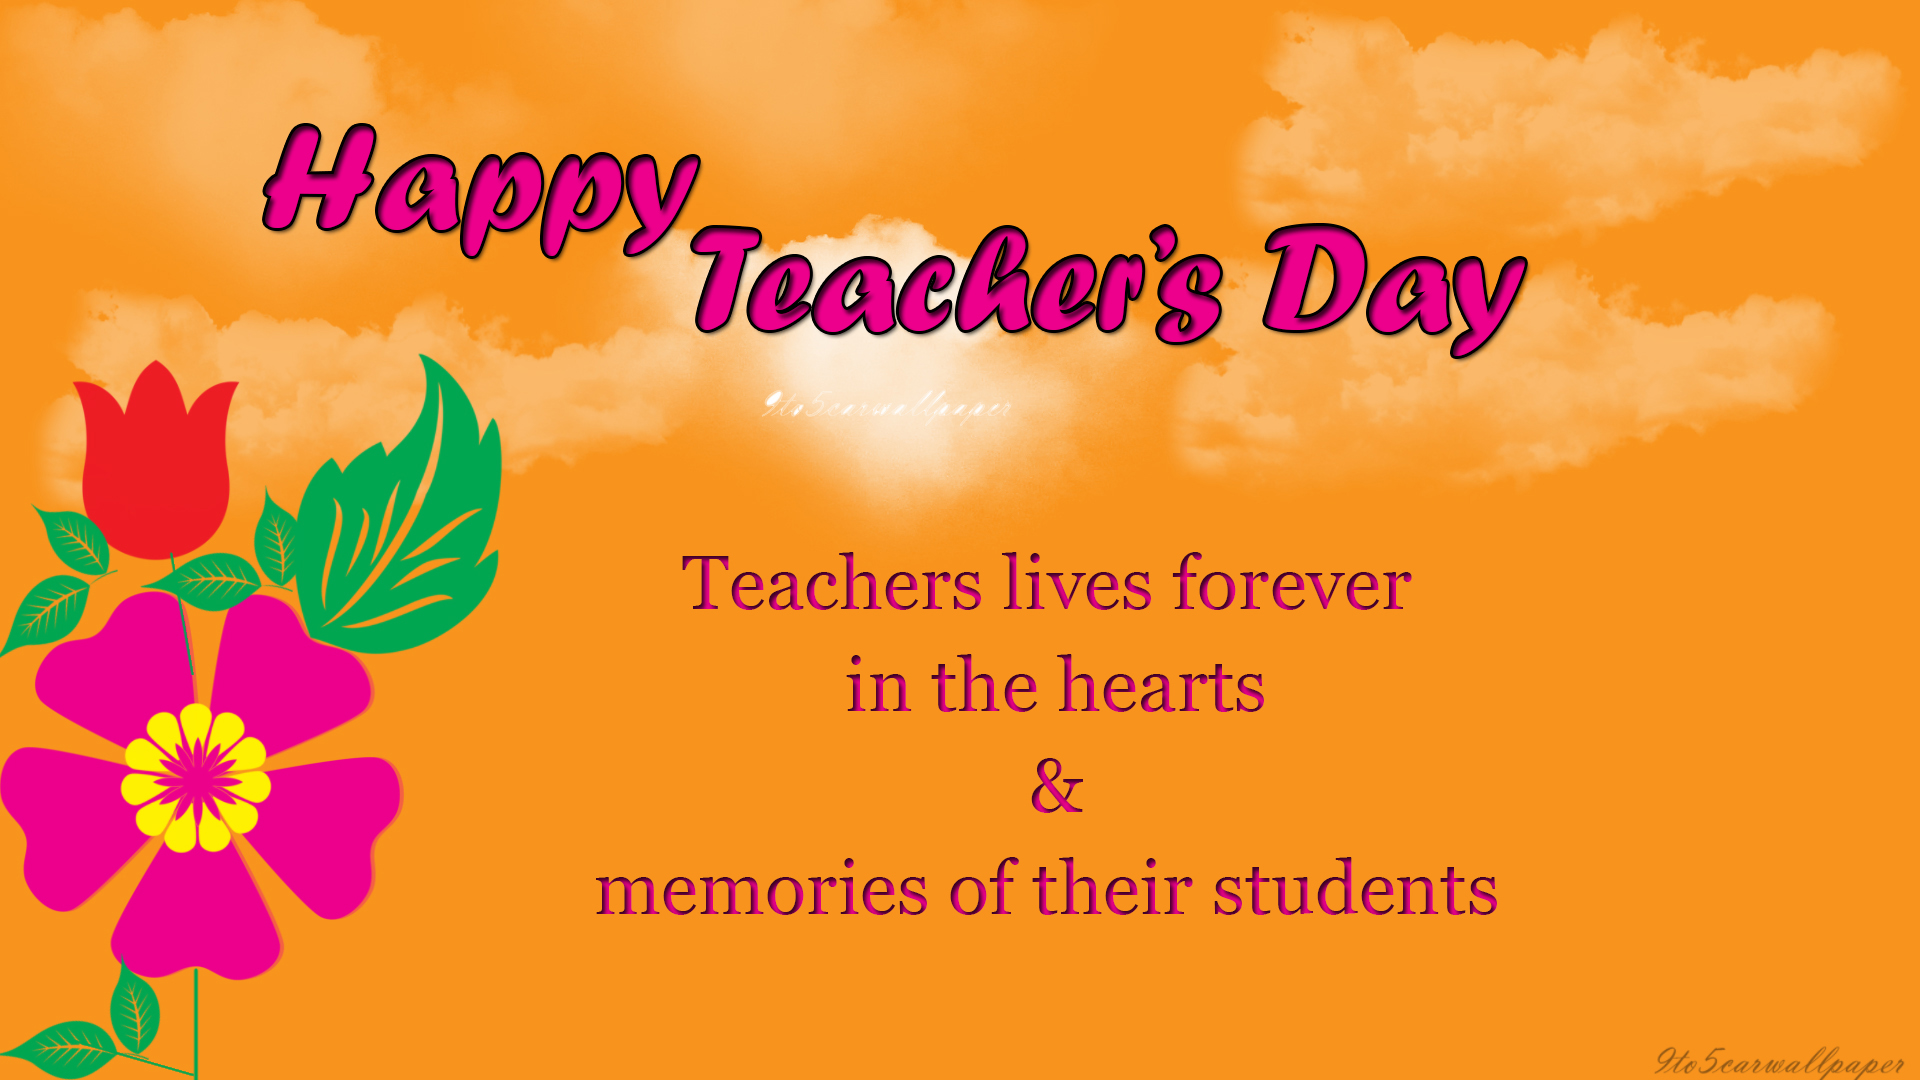 Happy teachers day wishes images quotes car wallpapers happy teachers day posters wallpapers wishes cards images kristyandbryce Choice Image